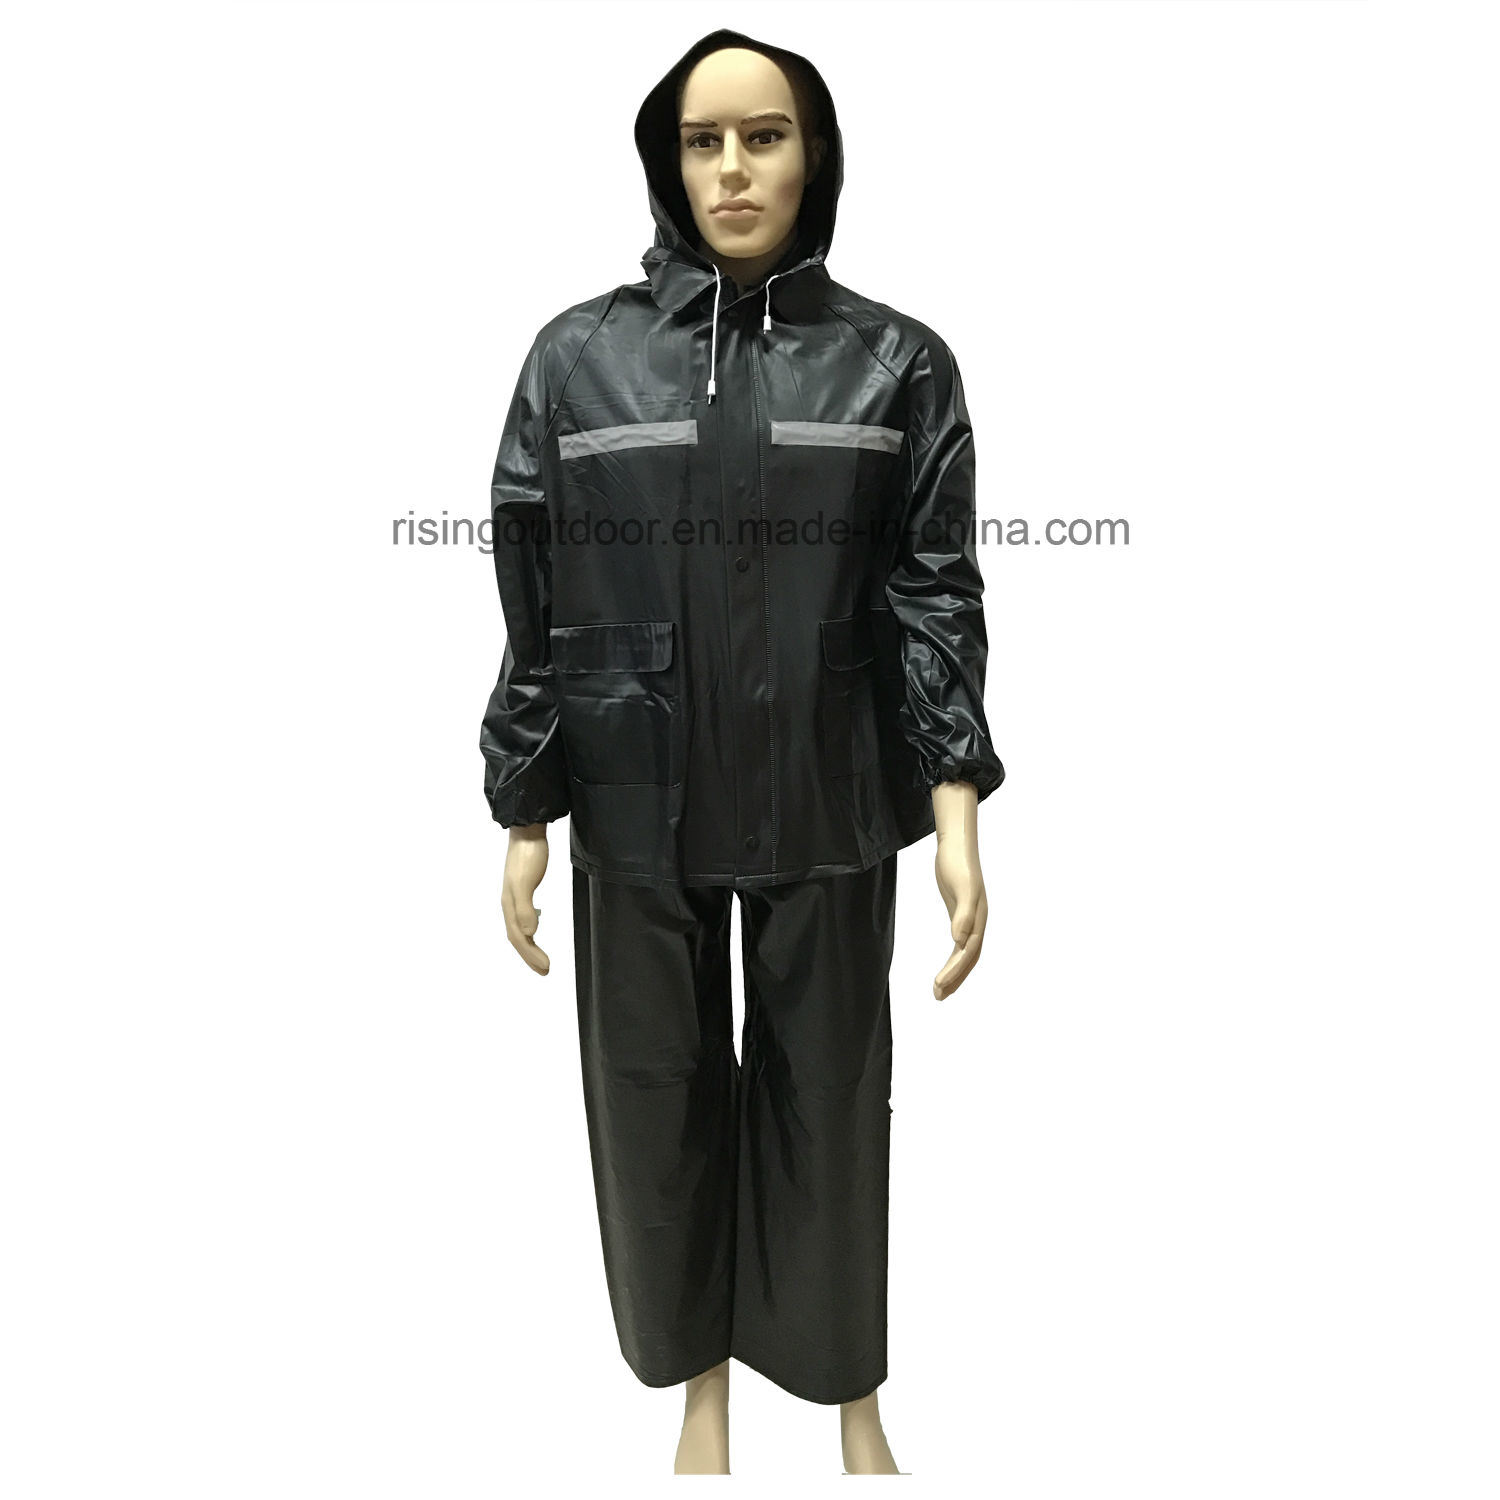 meticulous dyeing processes official store big collection [Hot Item] Black PVC Biking Rainwear with Reflective for Safety